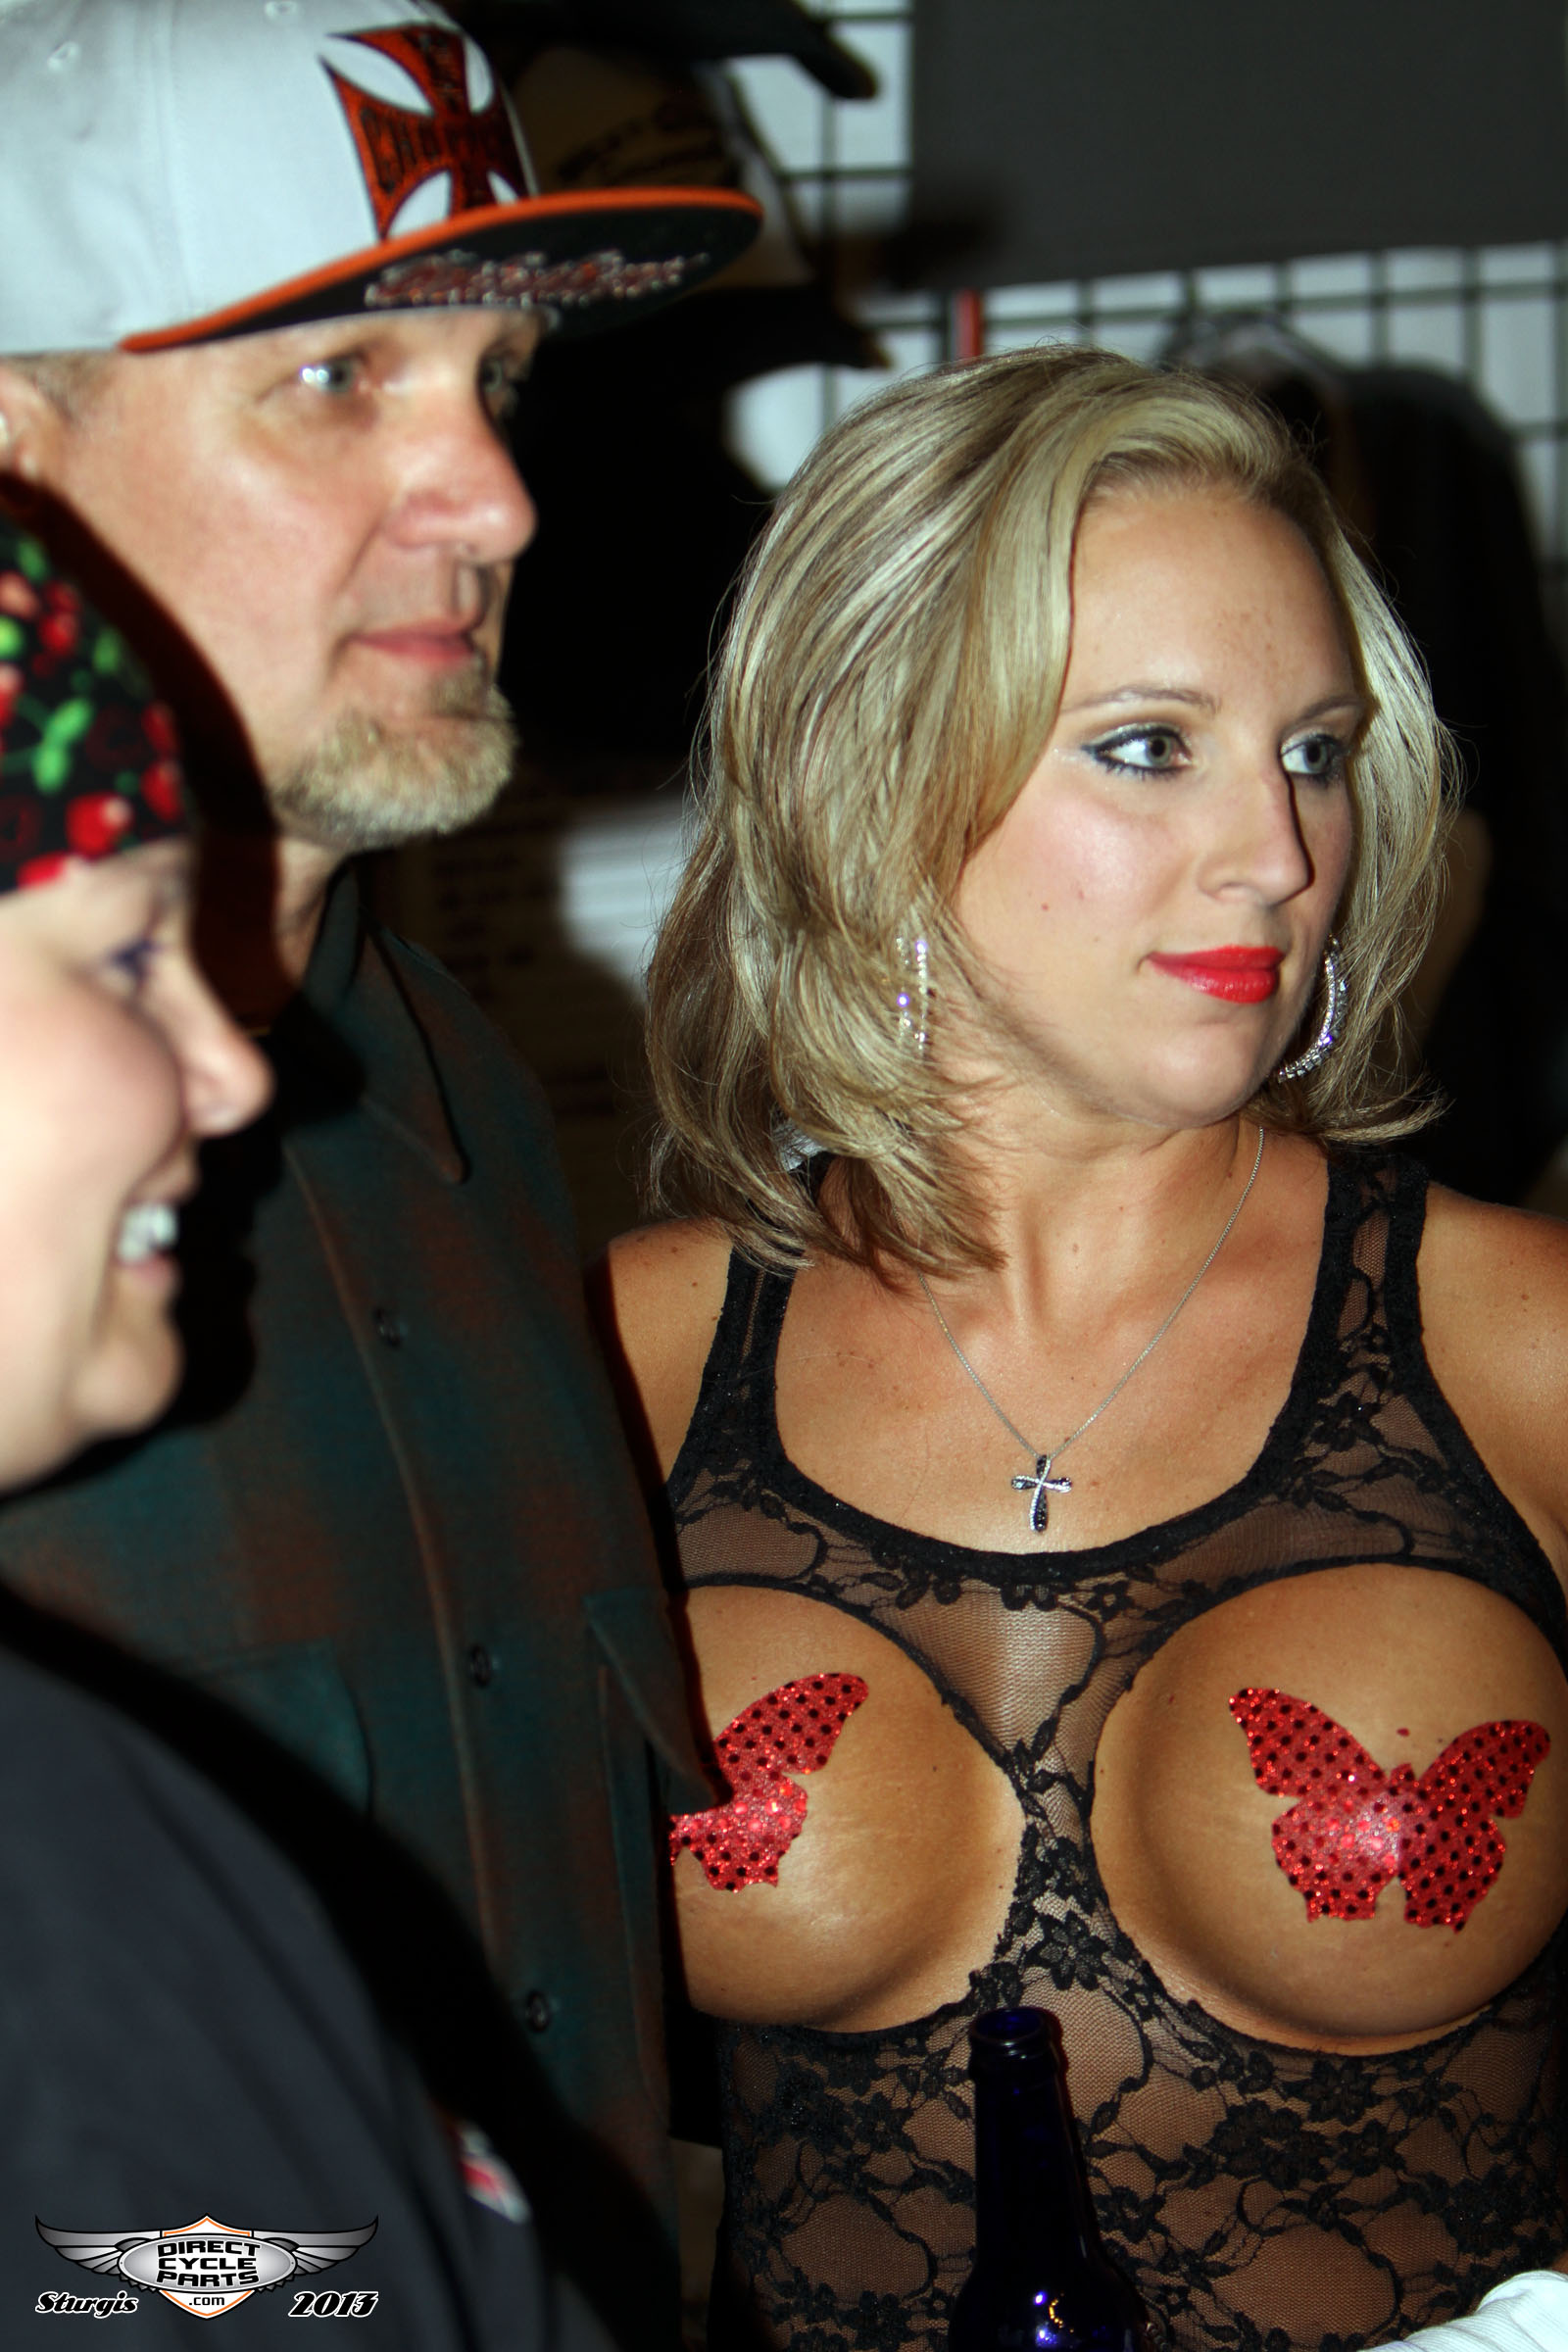 Agree, the Full throttle saloon women nude